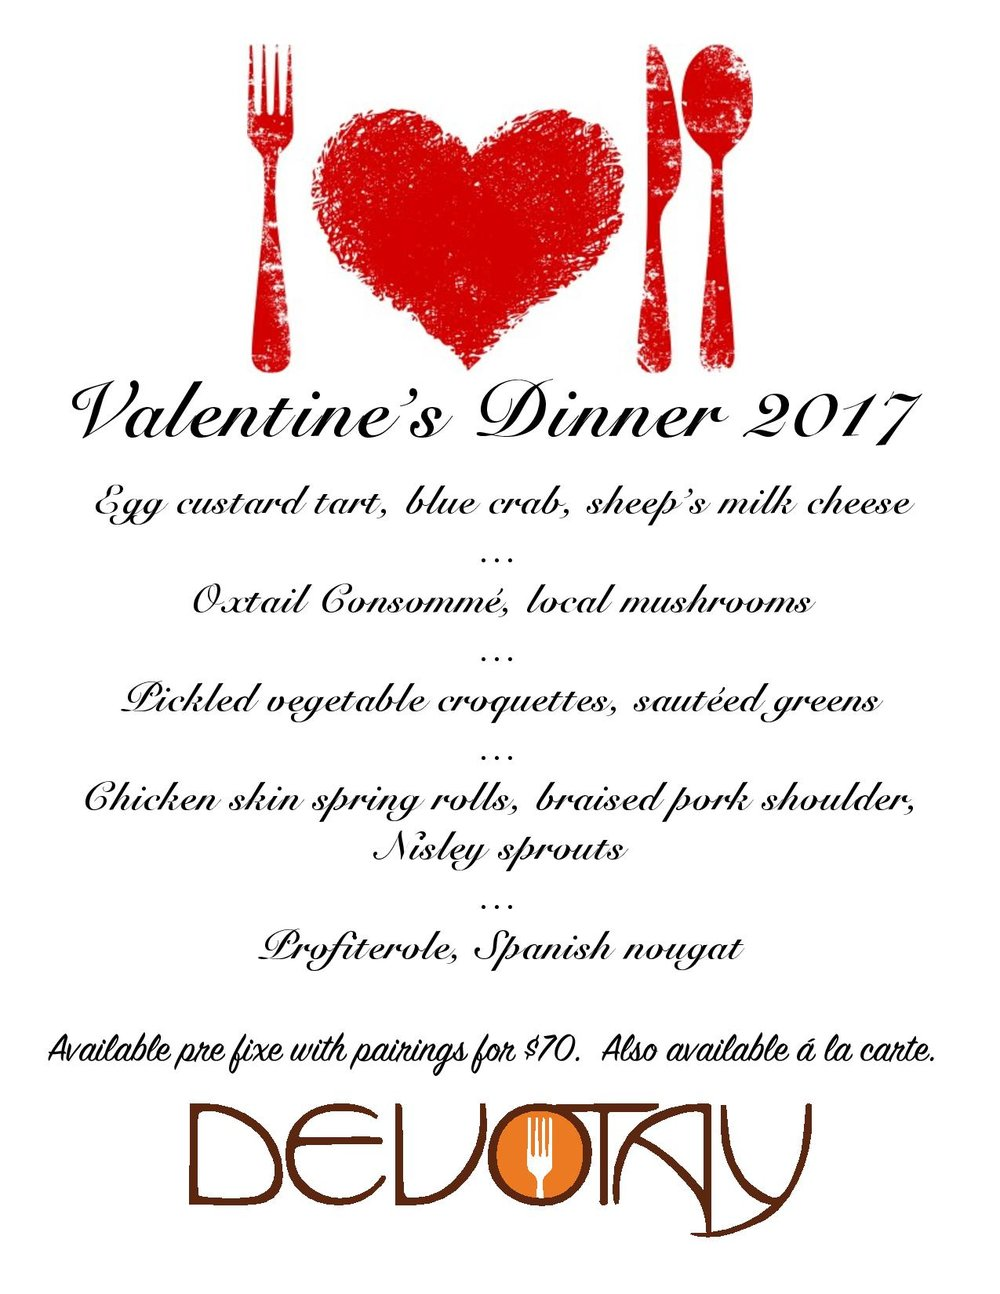 Call 319.354.1001 for reservations.